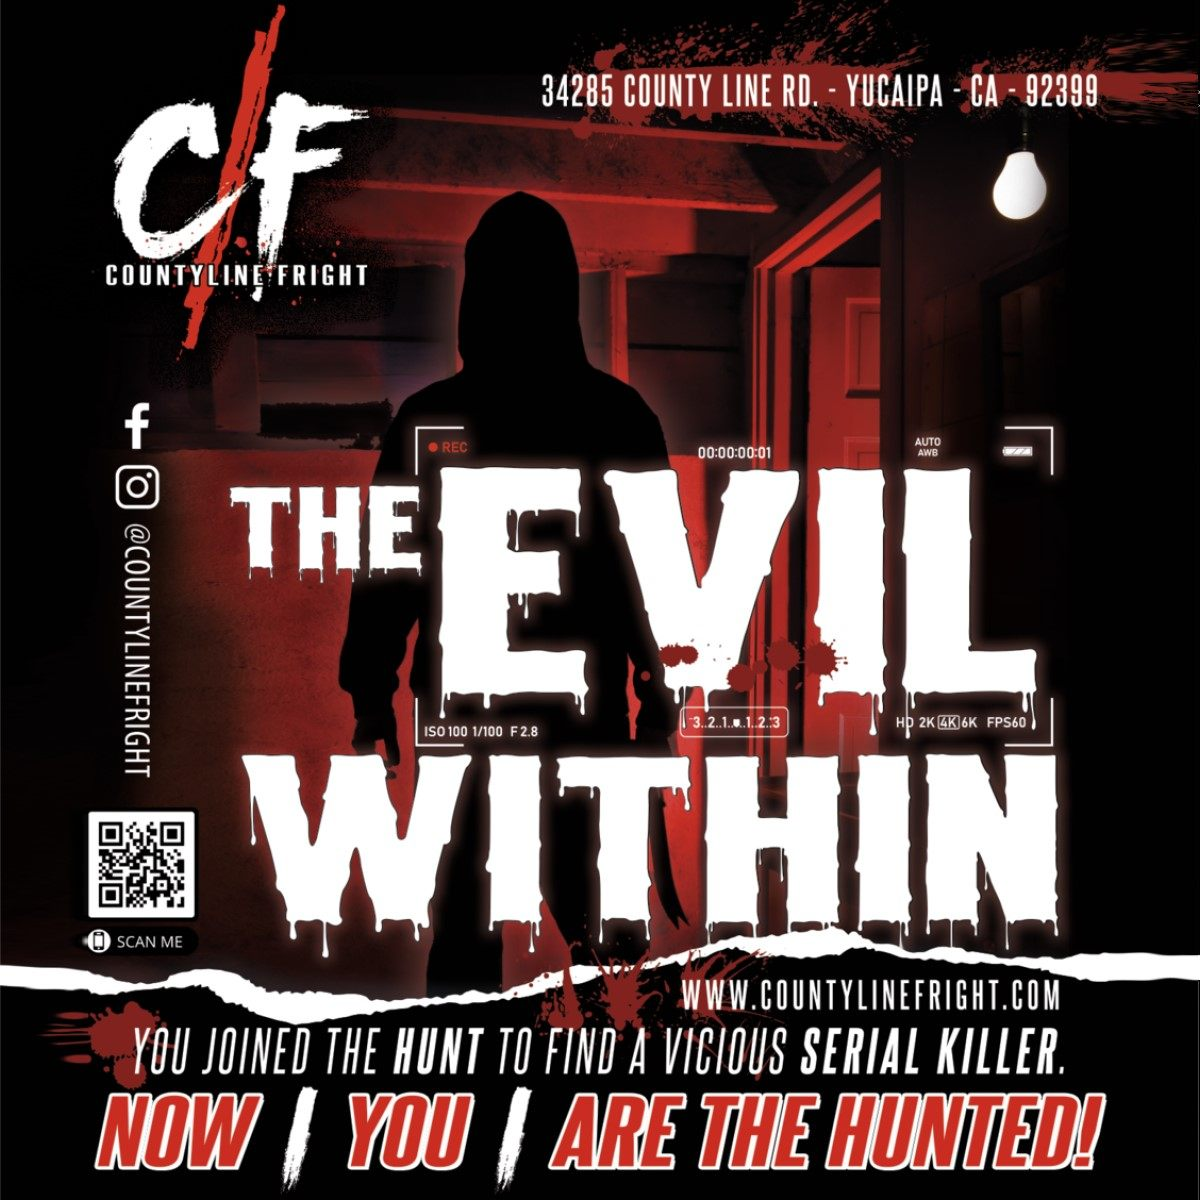 Countyline Fright - The Evil Within - Haunted House - Yucaipa - CA